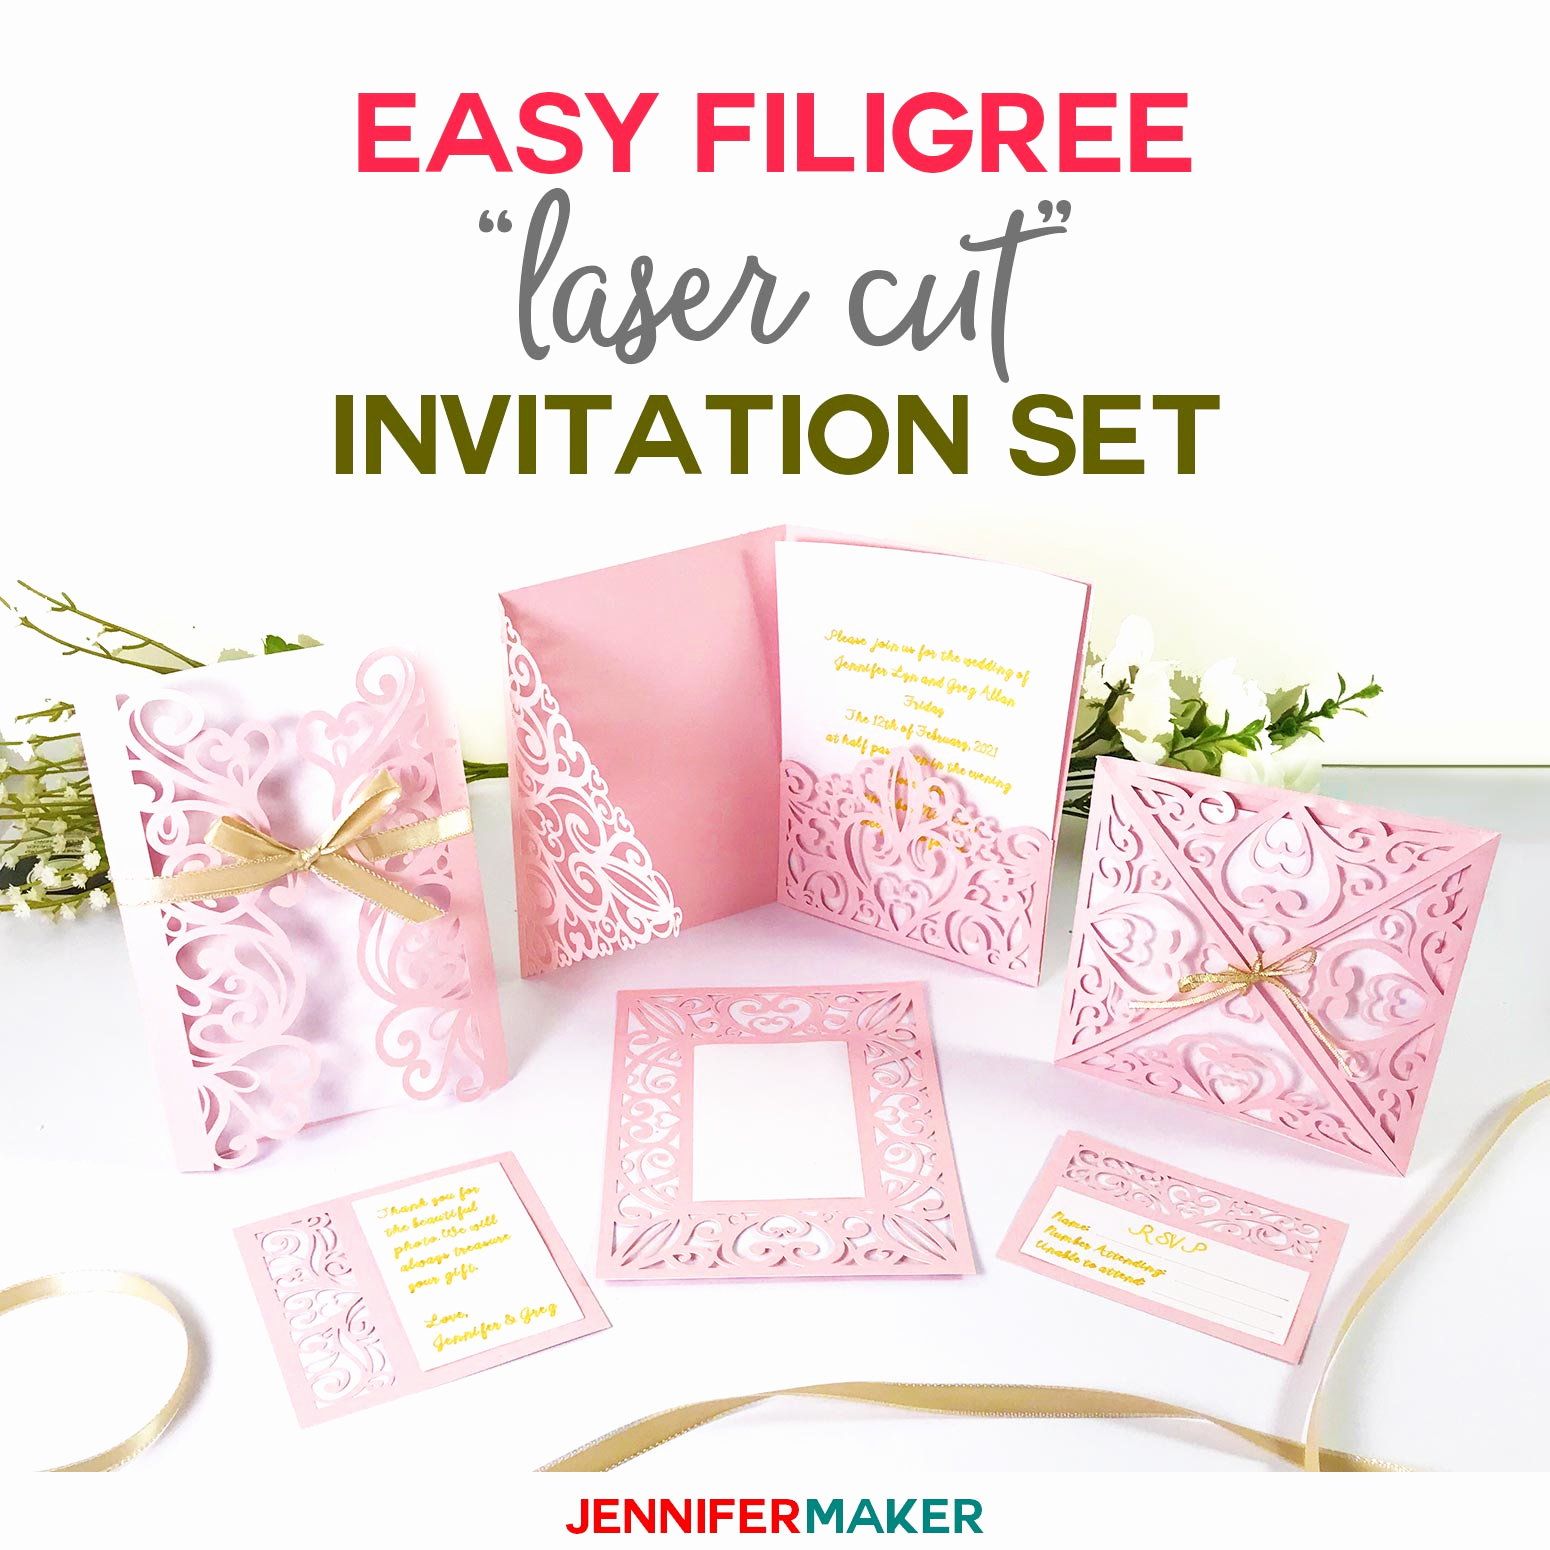 "Printable Wedding Invitation Templates New Diy Wedding Invitation Templates Free ""laser Cut"" Set"